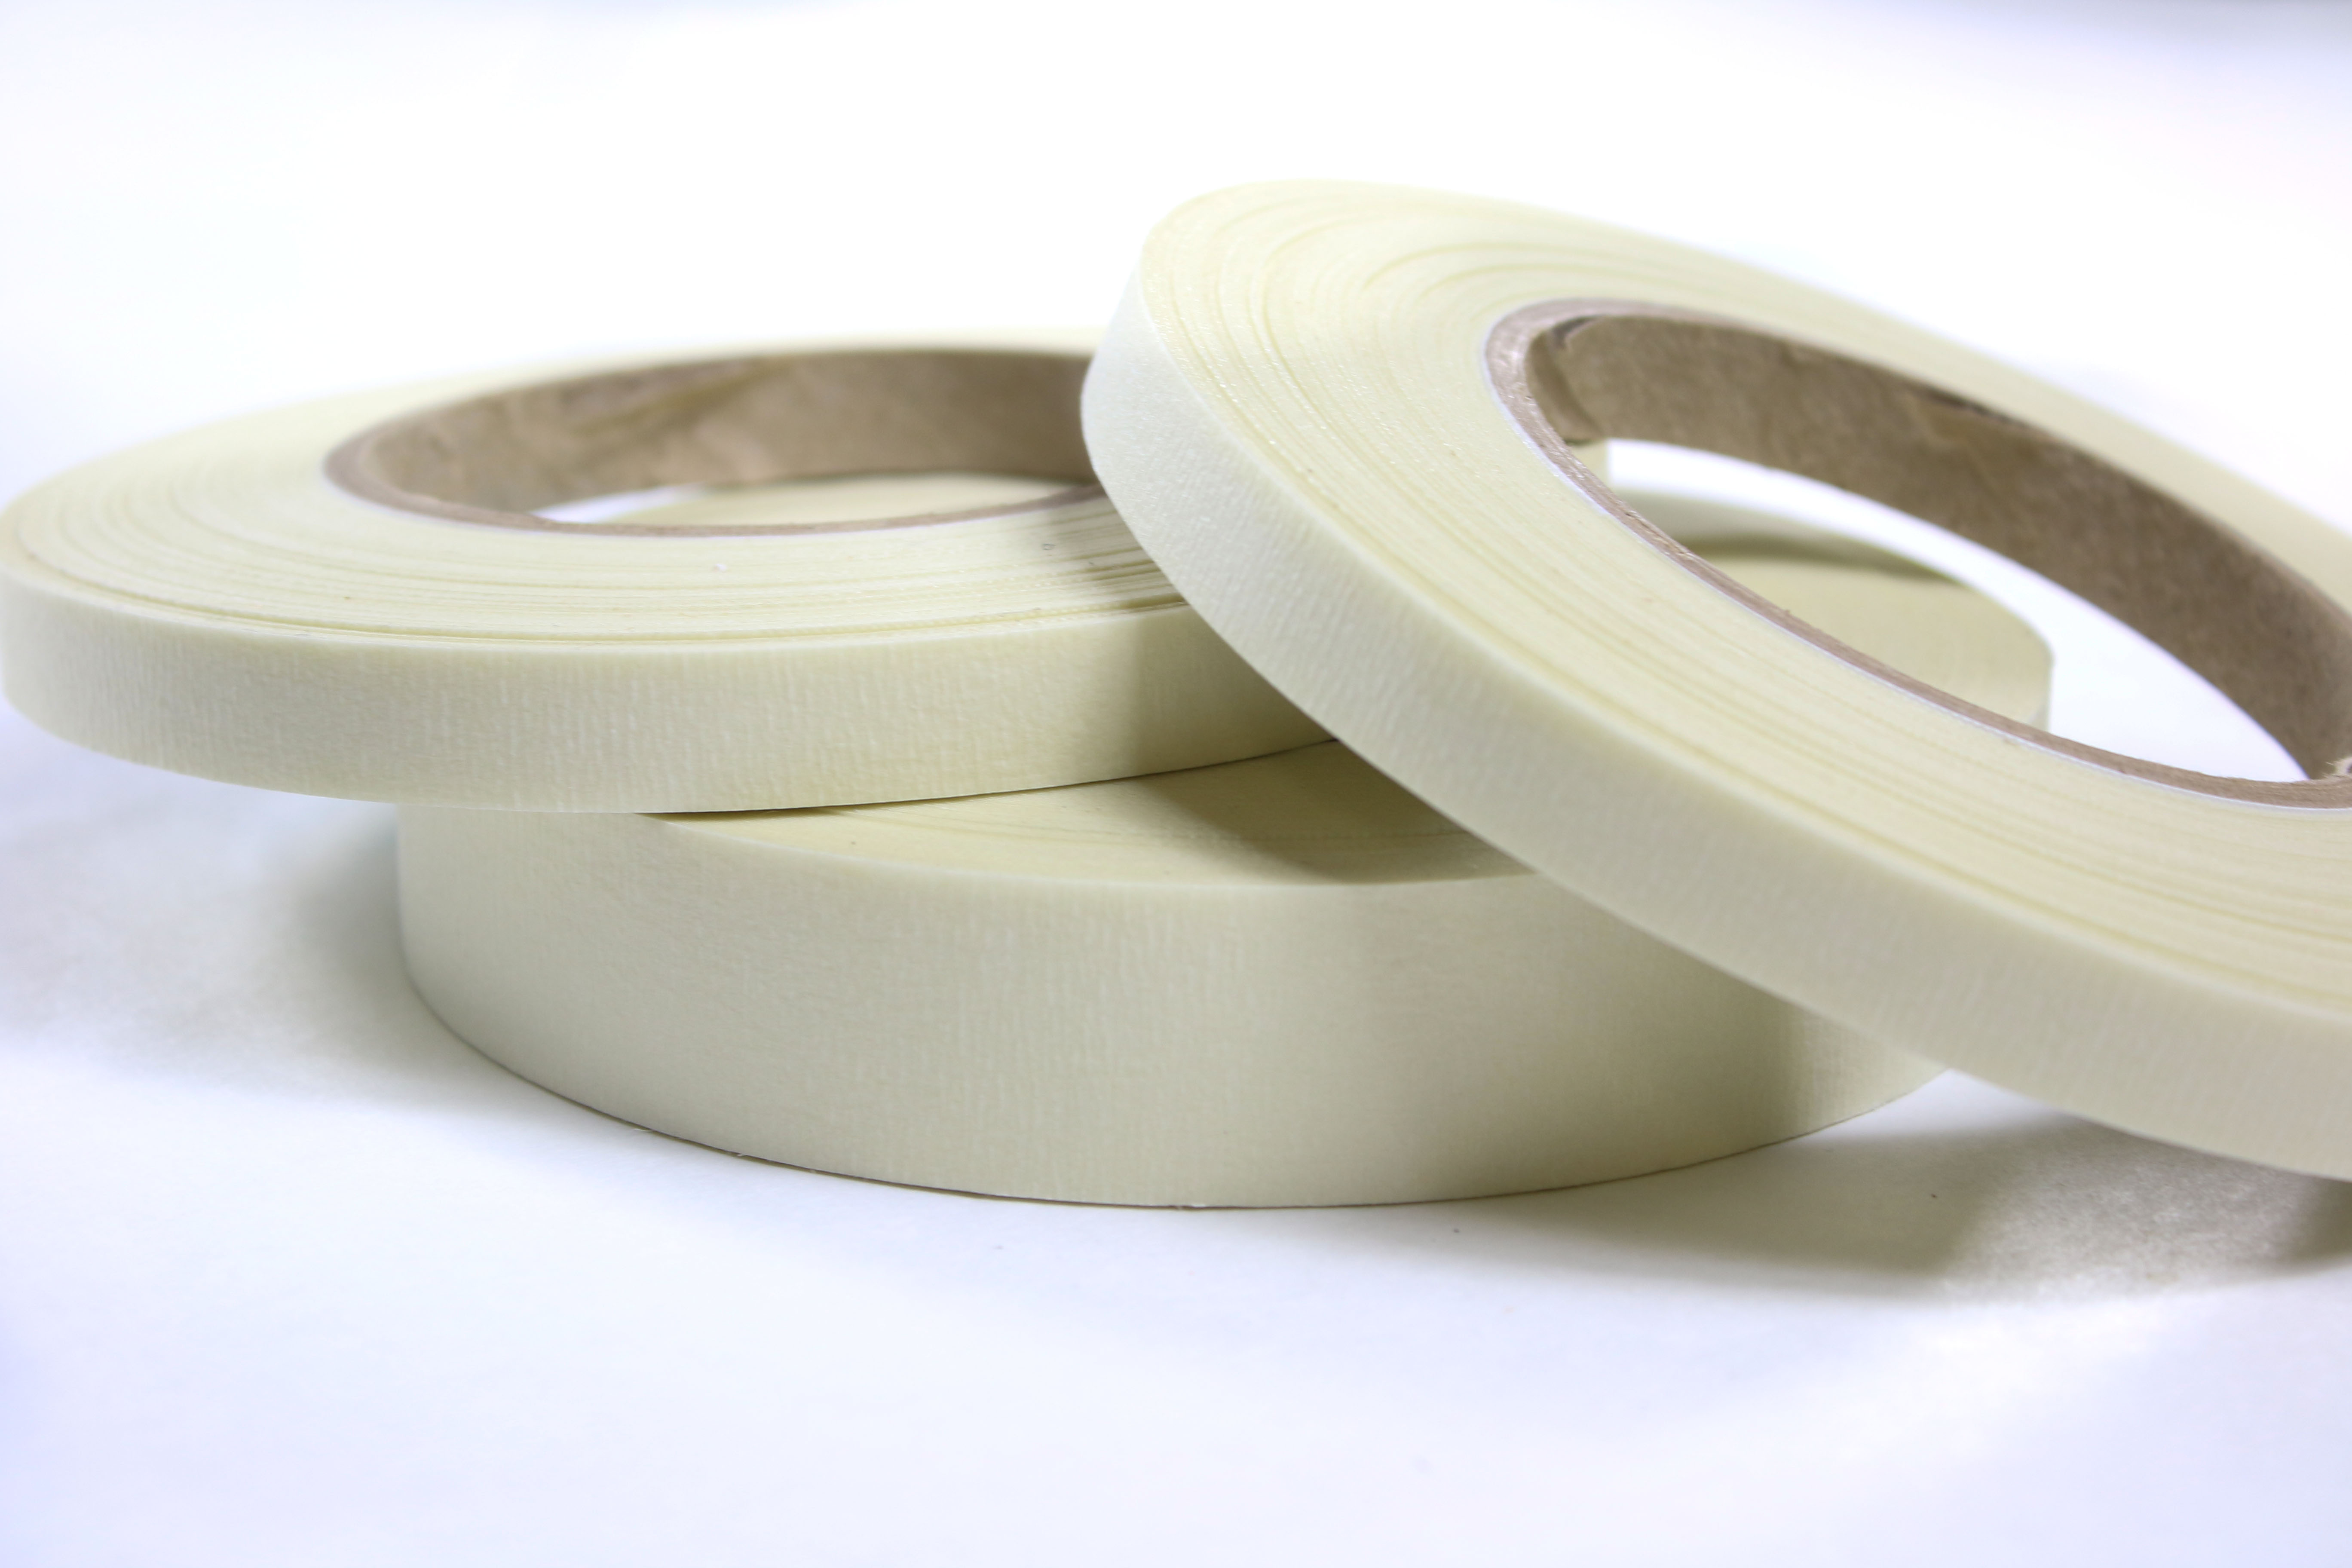 CS Hyde 17-FibG-DS Double Sided Fiberglass Tape with Silicone Adhesive 11.5 x 36 Yards 11.5 x 36 Yards CS Hyde Company Inc 17-FibG-DS-11.5-36